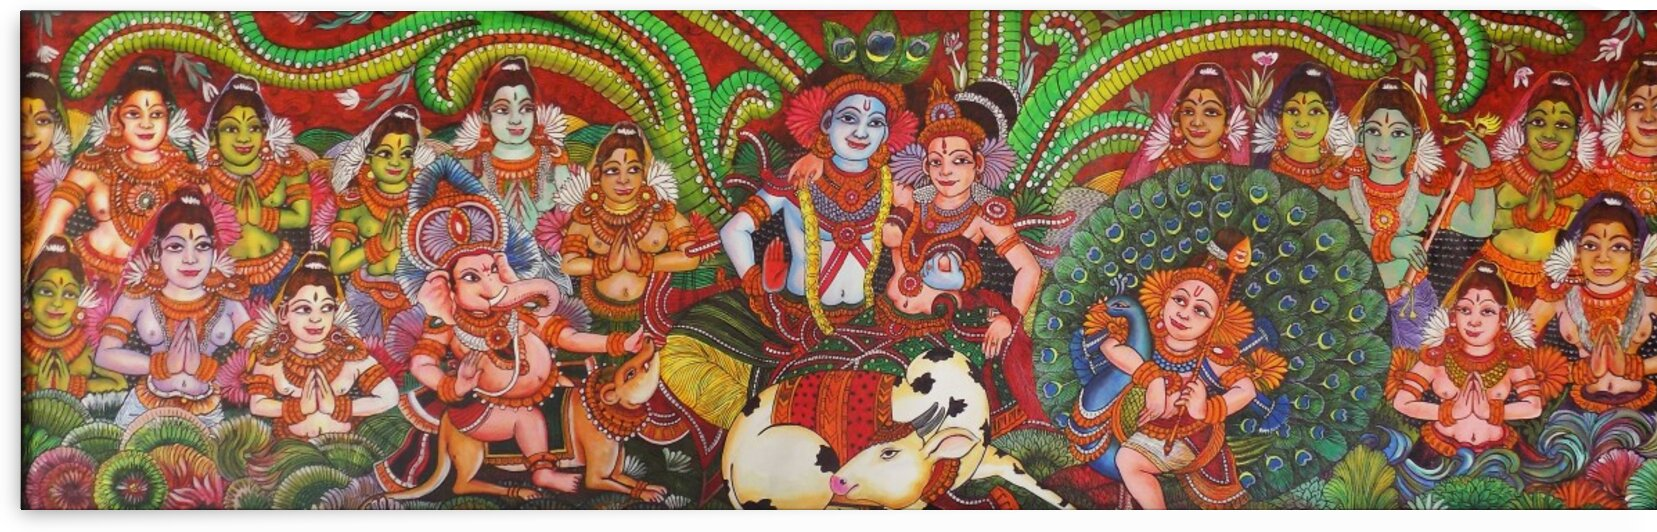 KRISHNA AND RADHA BLESSED BY LORD MURUGA AND LORD GANESHA MURAL PAINTING by ASP ARTS